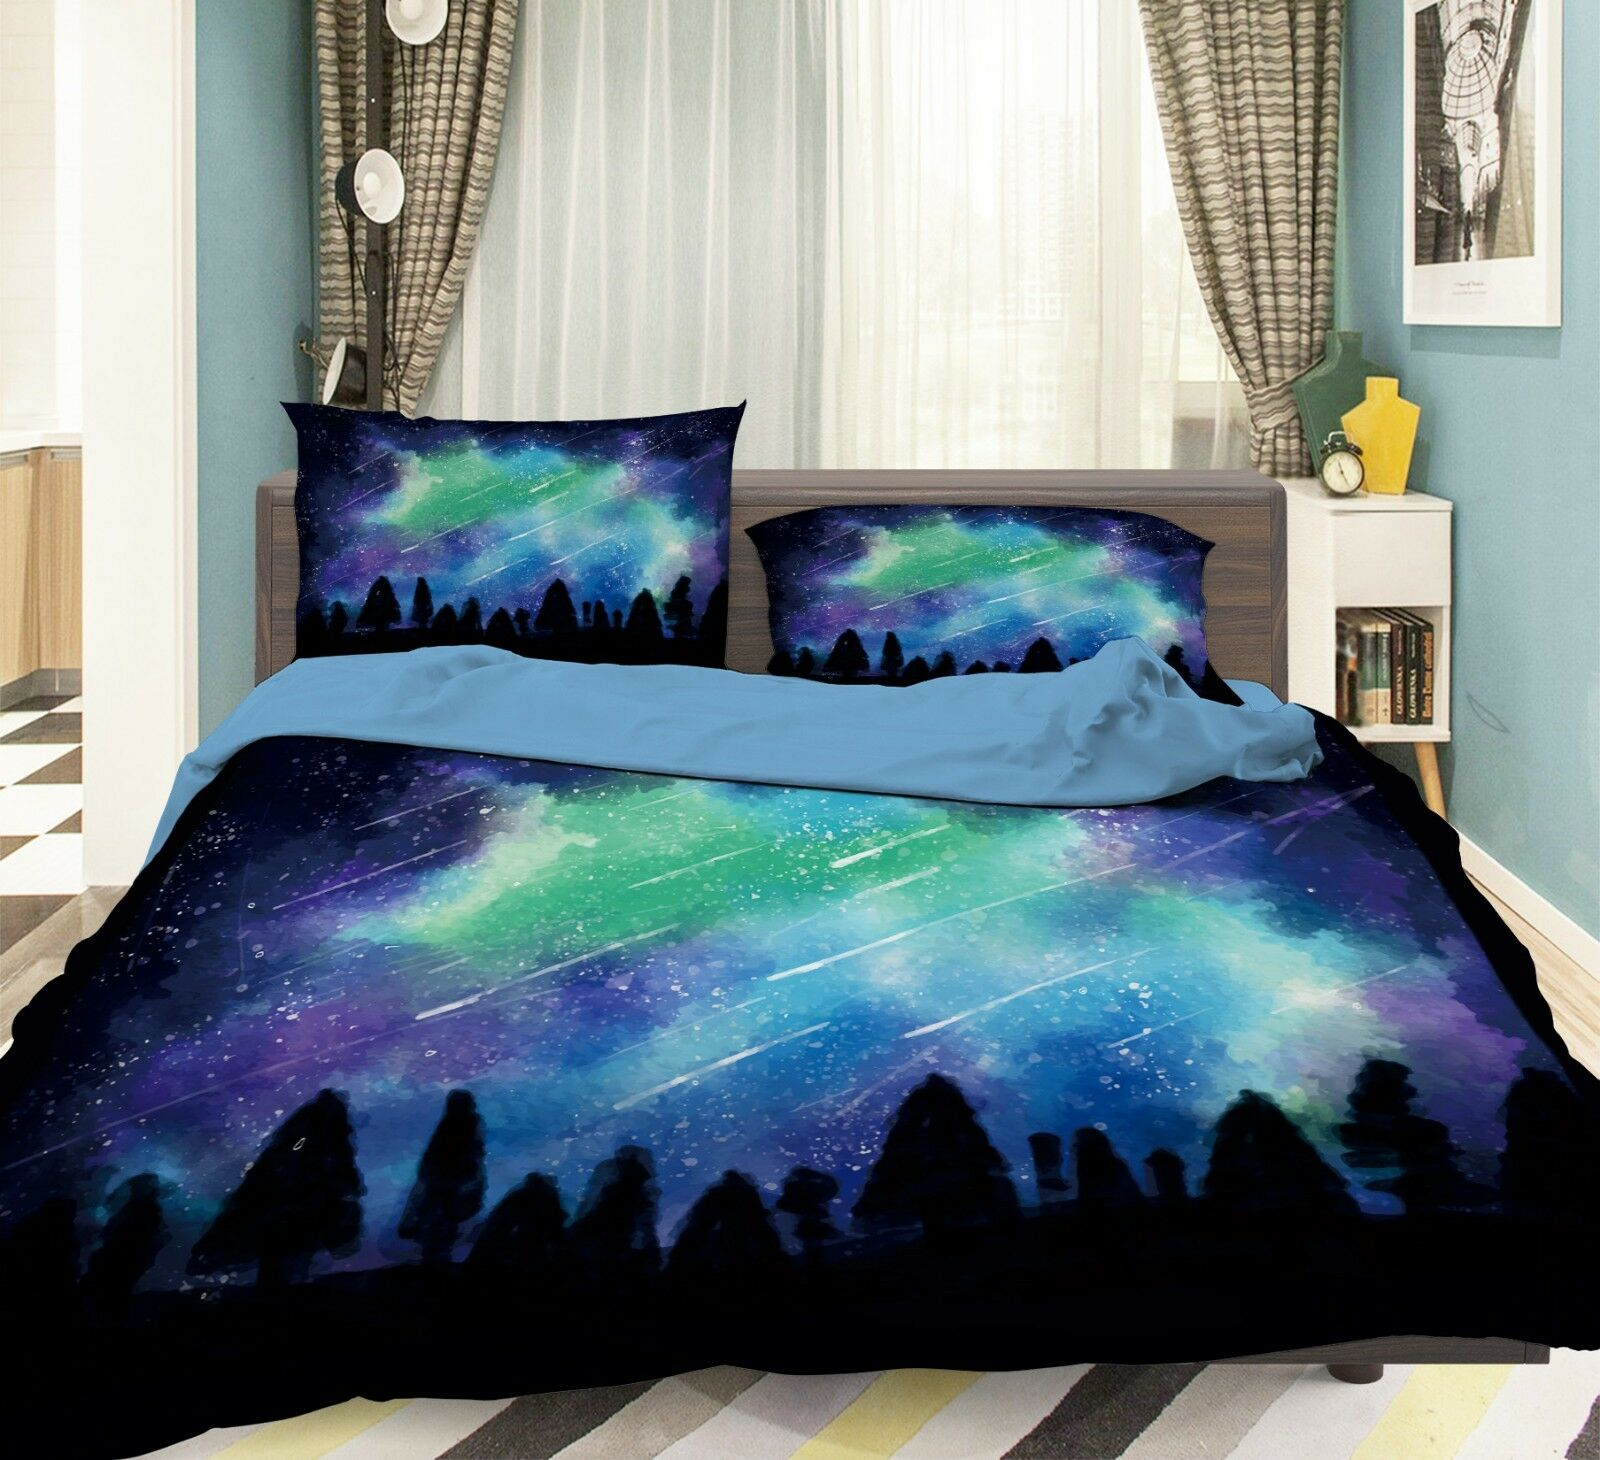 3D Meteor Naturally6 Bed Pillowcases Quilt Duvet Cover Set Single Queen AU Carly